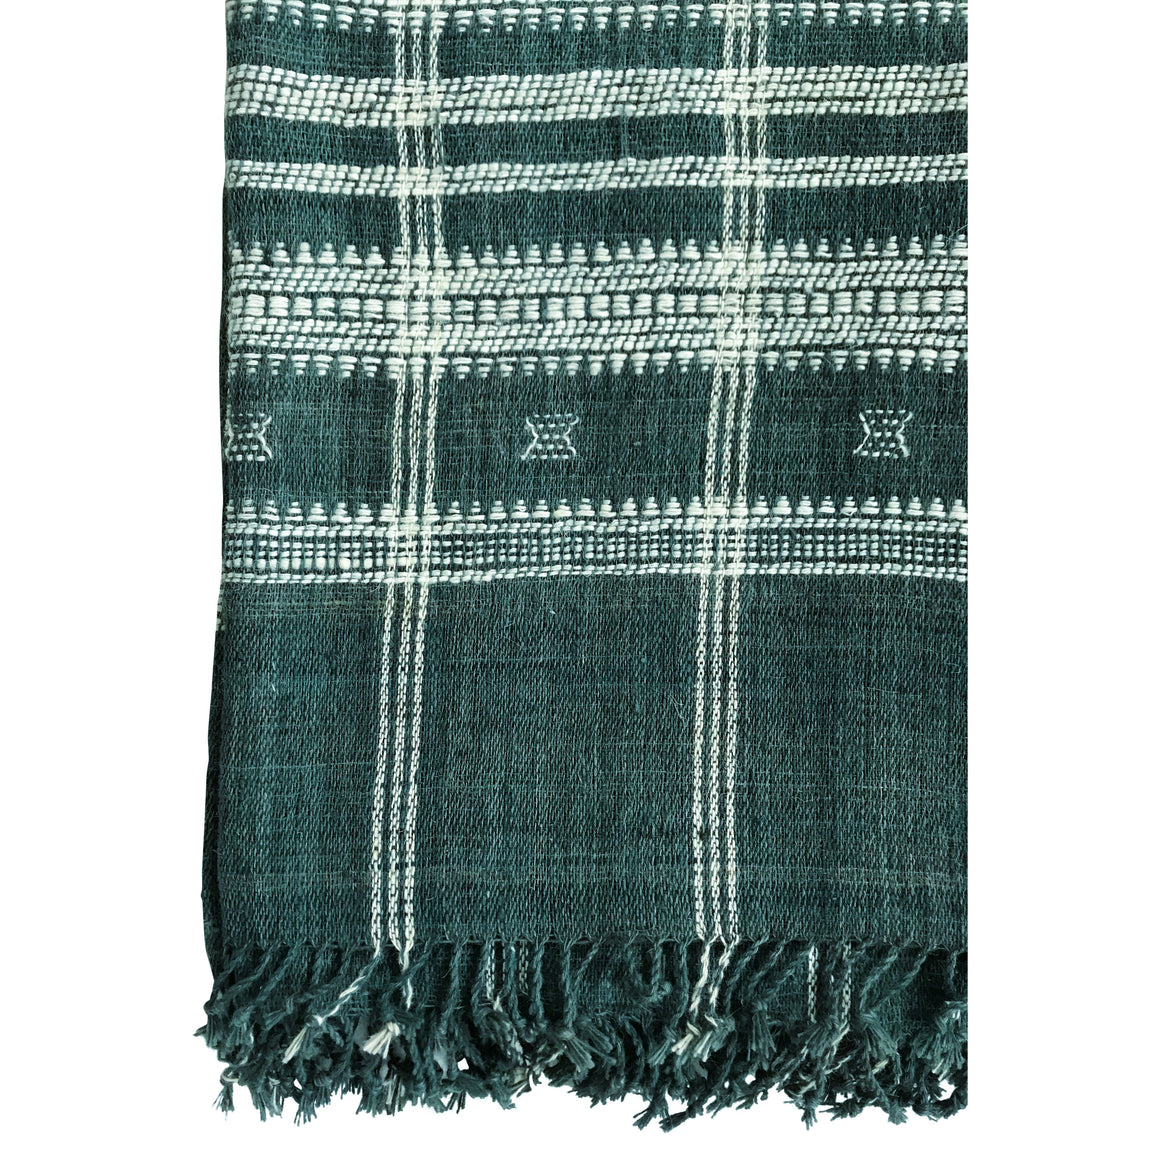 Off white & Emerald wool bedcover hand woven in India greige design shop + interiors indian bedcover throw